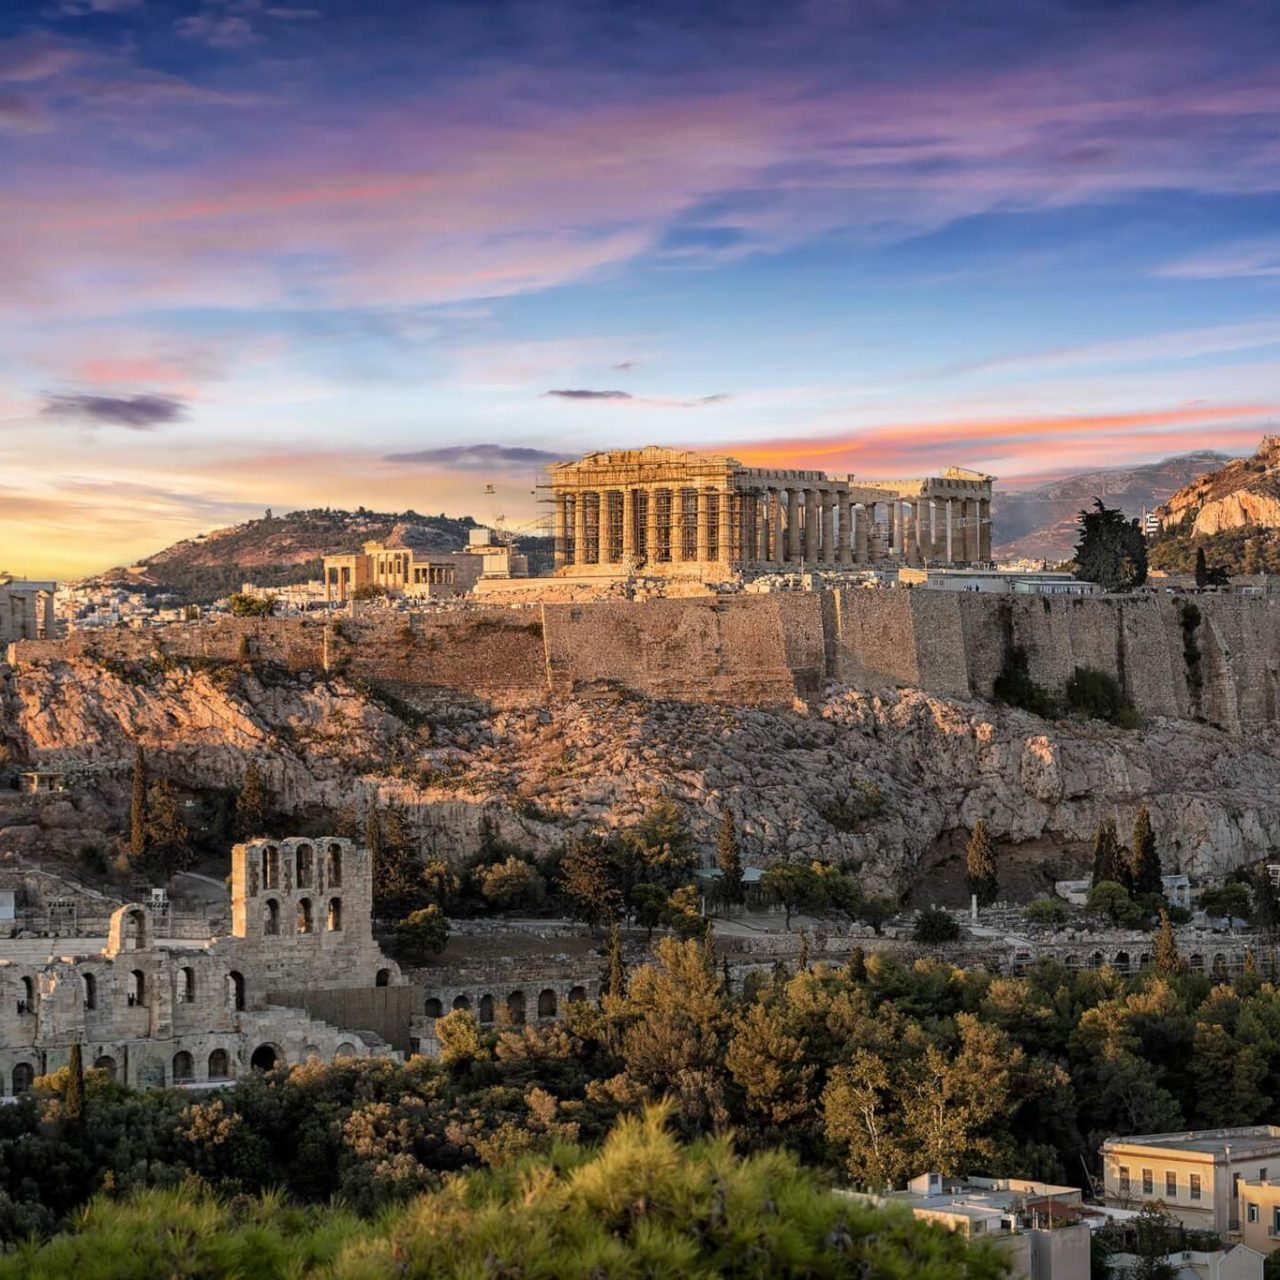 http://travelicious.bold-themes.com/main-demo/wp-content/uploads/sites/2/2018/09/destination-athens-01-1280x1280.jpg